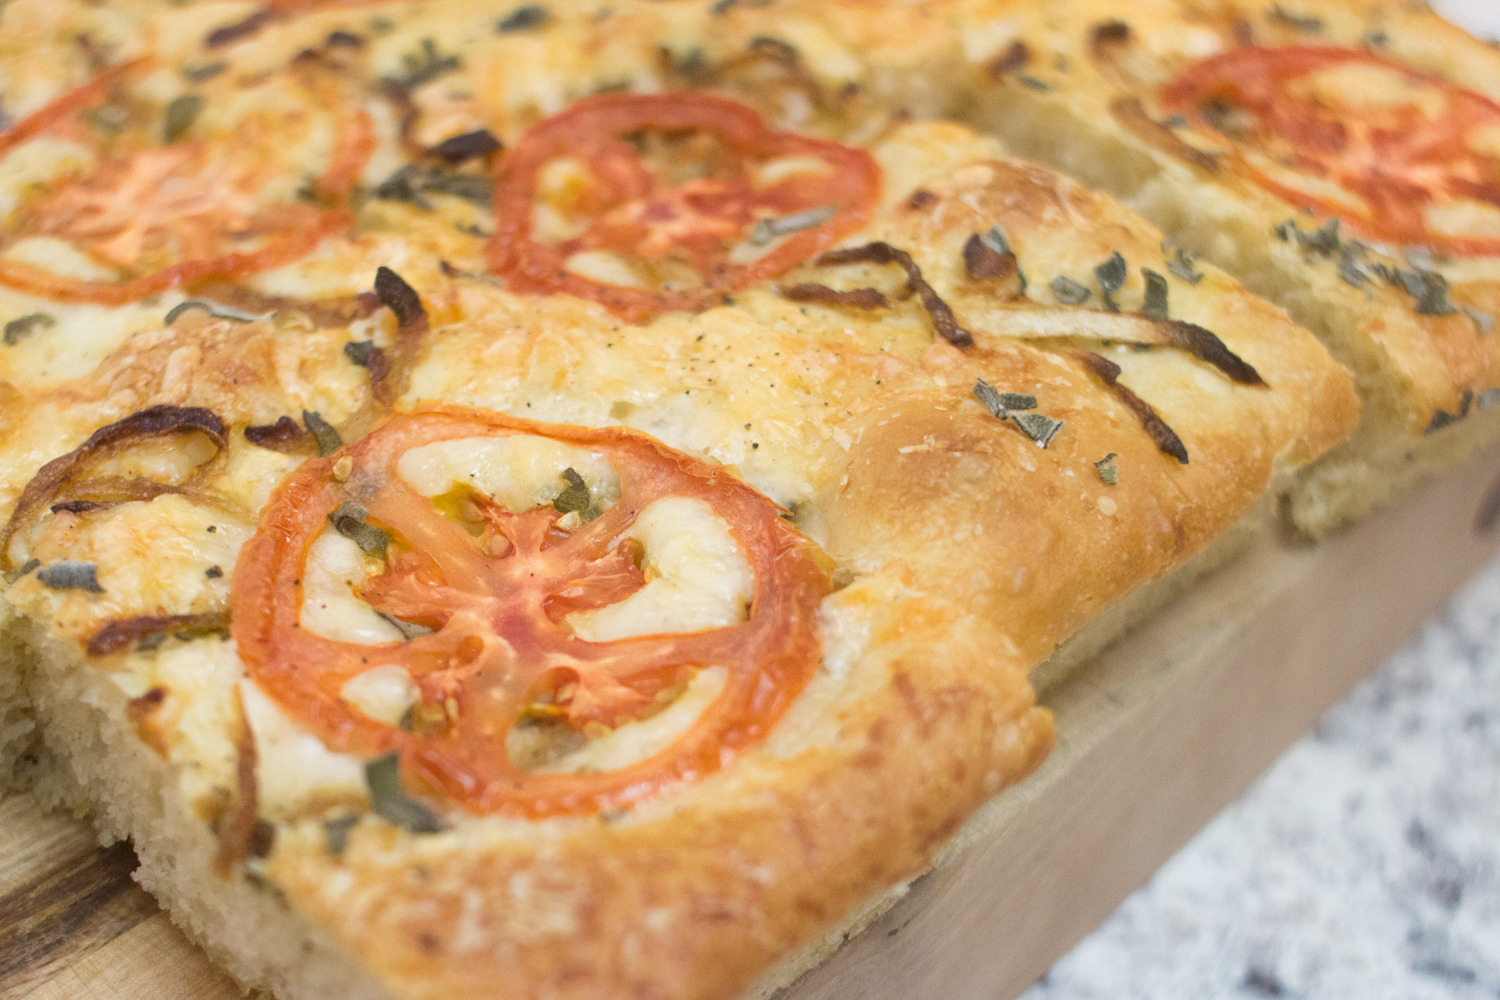 Sage, Tomato and Caramelized Onion Focaccia Bread with Olive Oil Dipping Sauce